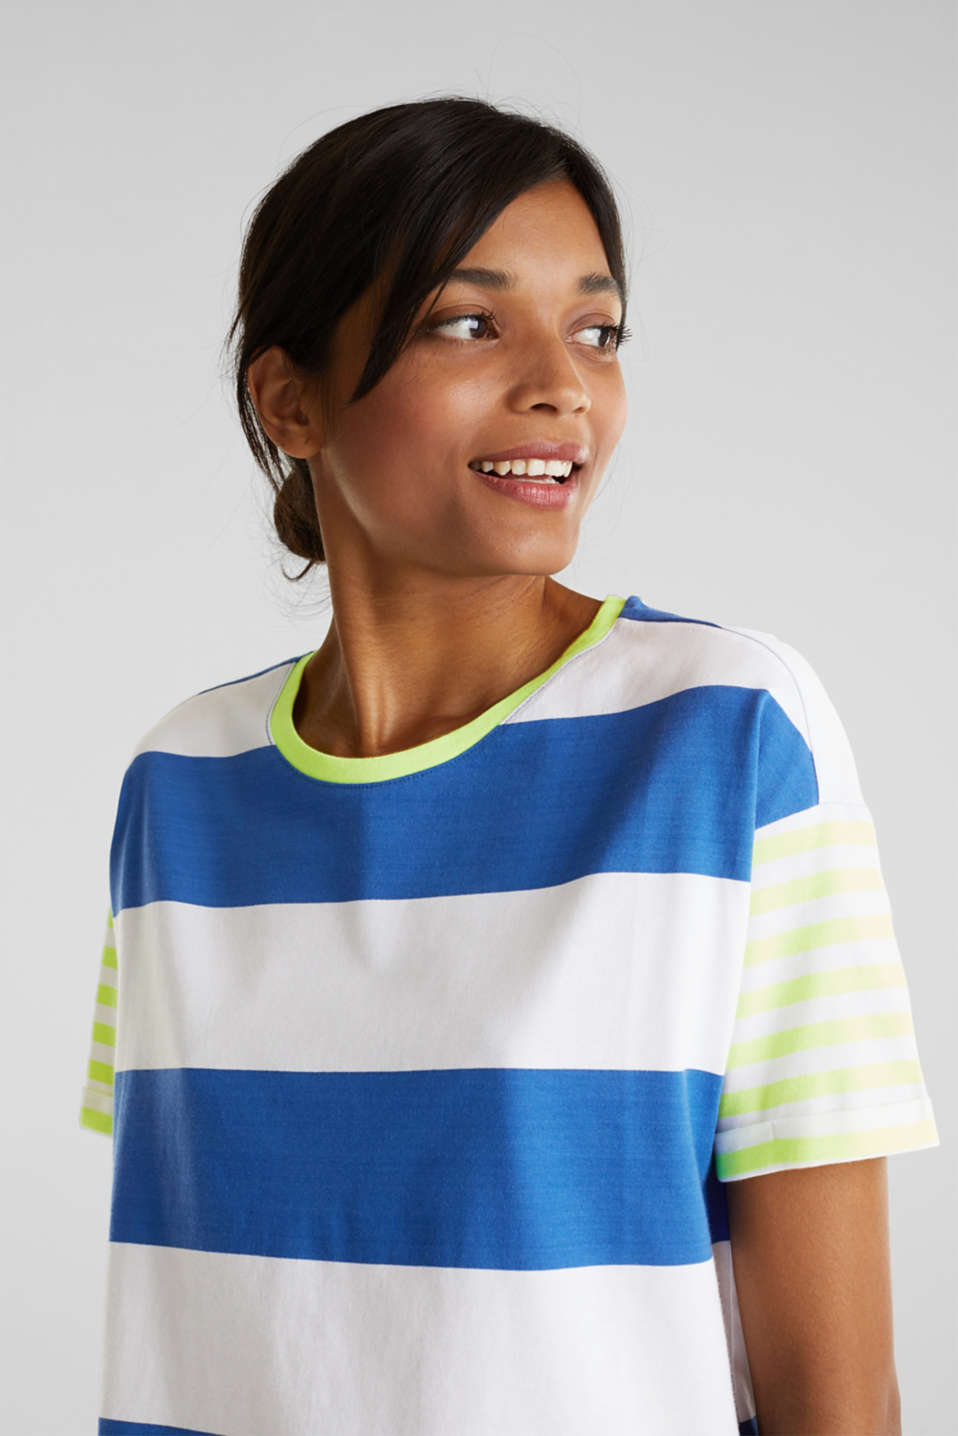 NEON T-shirt with block stripes, 100% cotton, BRIGHT BLUE, detail image number 2